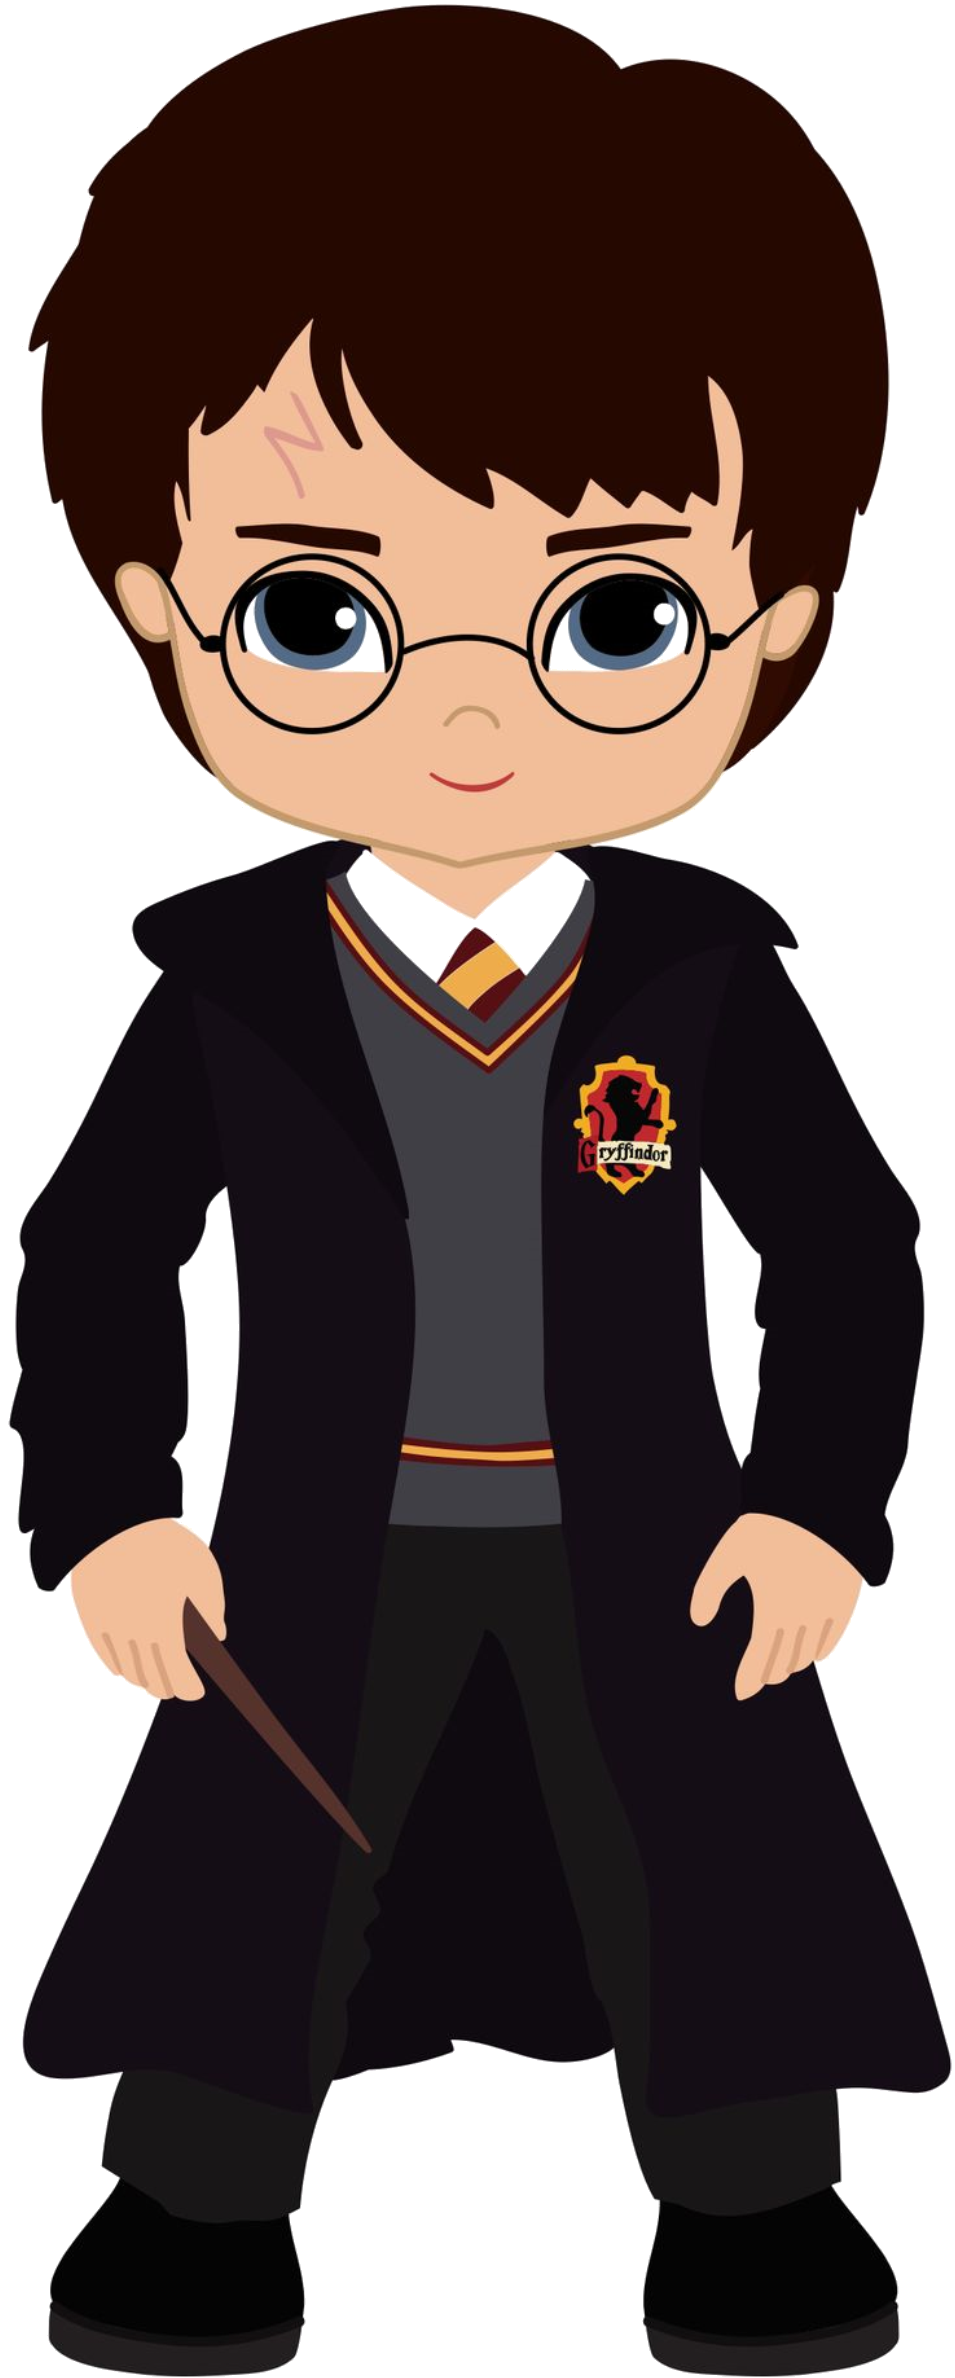 Necktie drawing harry potter. Our printable treasure hunt